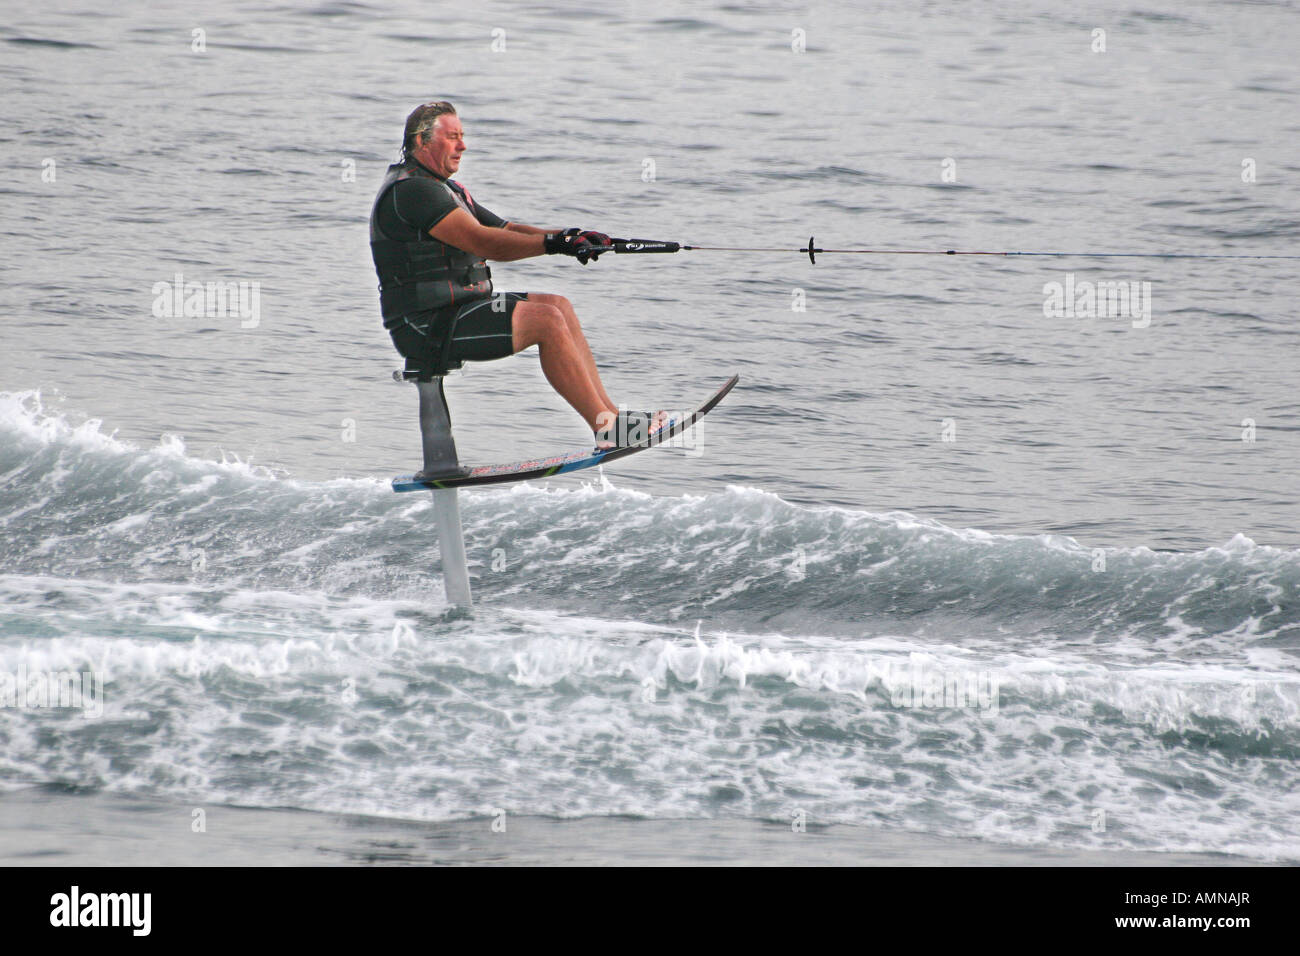 Water Ski Chair Man On Water Ski Chair Being Pulled At High Speed By Motor